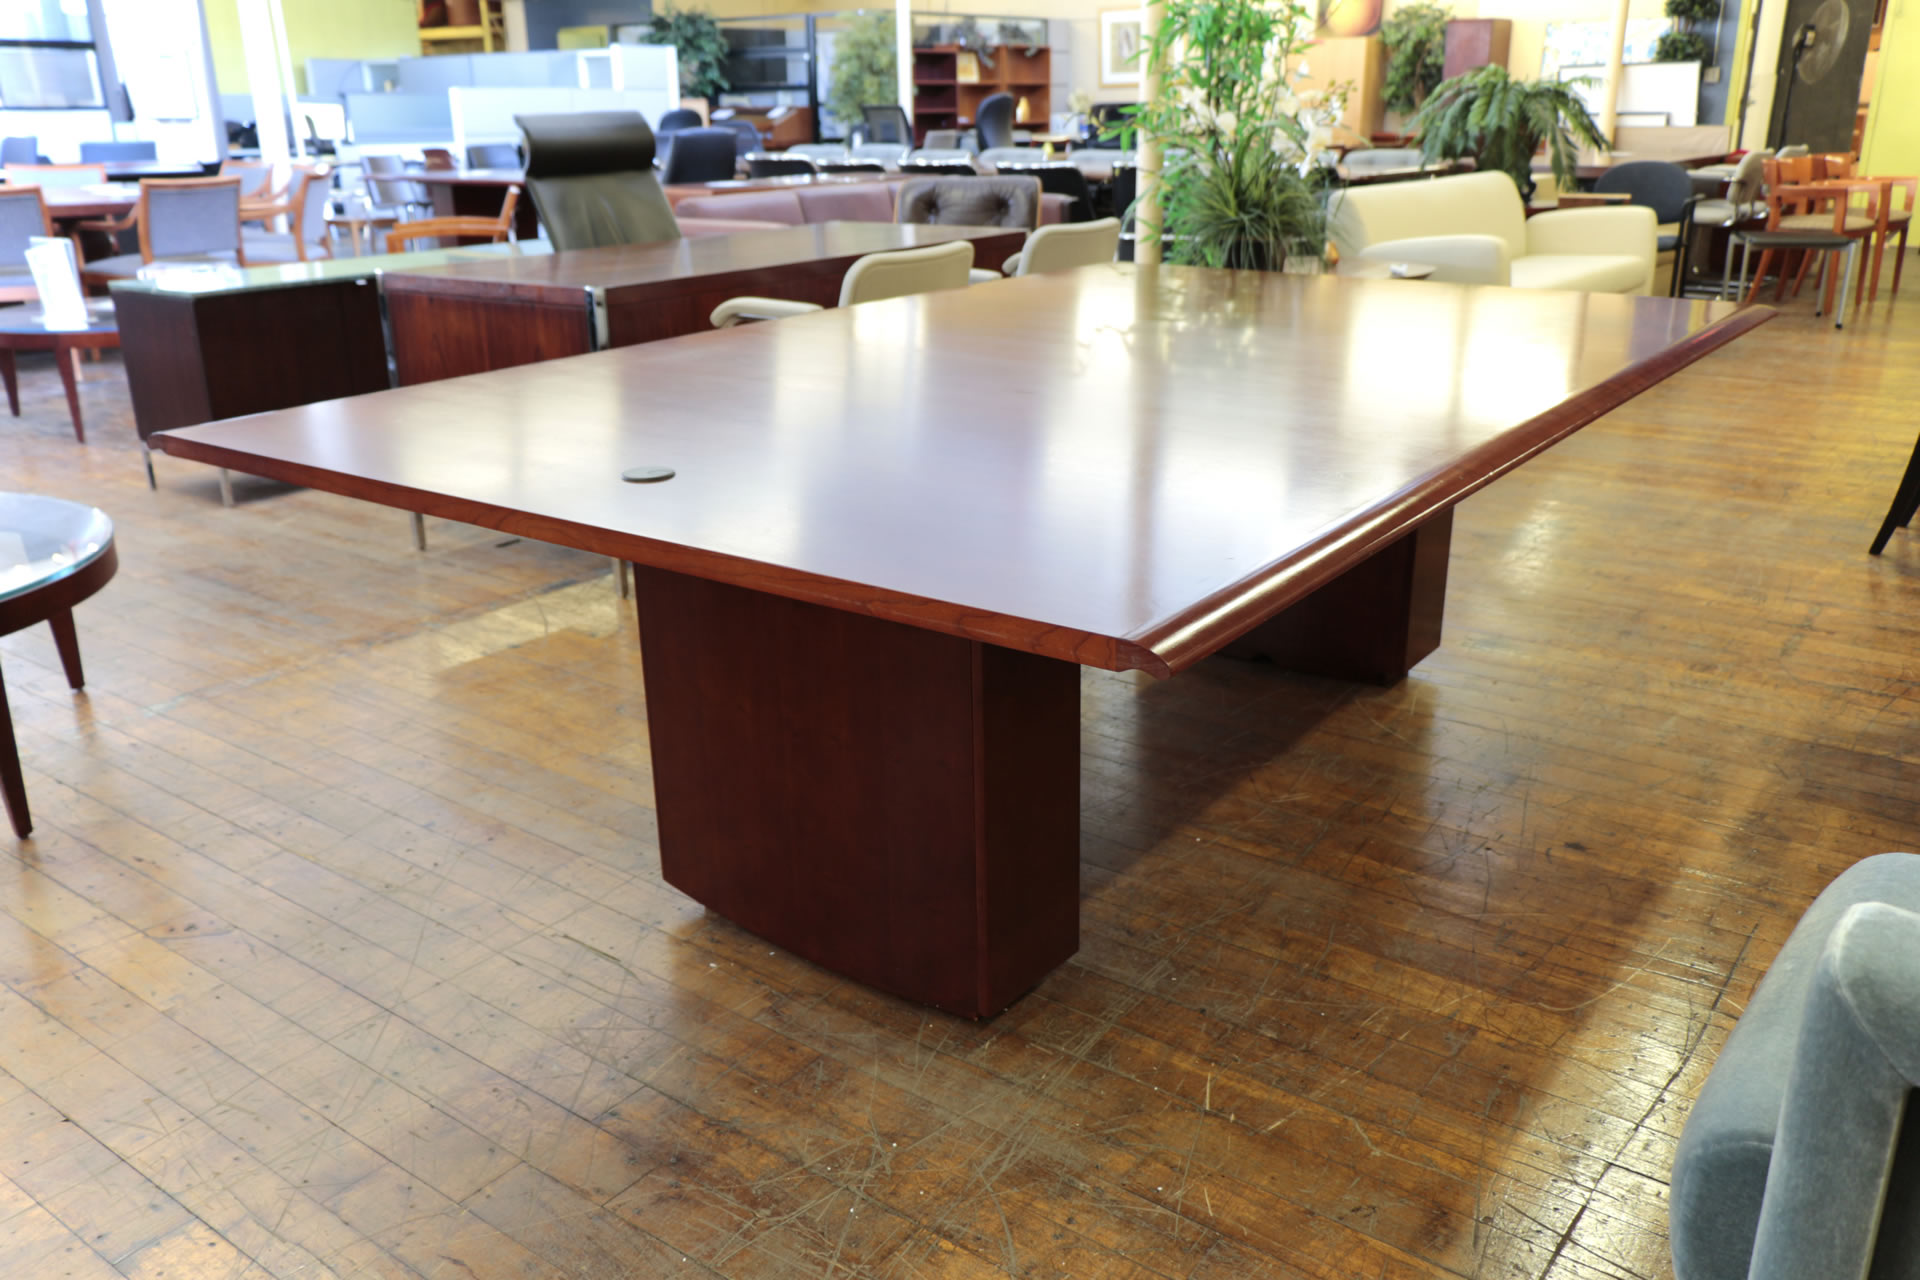 peartreeofficefurniture_peartreeofficefurniture_mg_4754.jpg